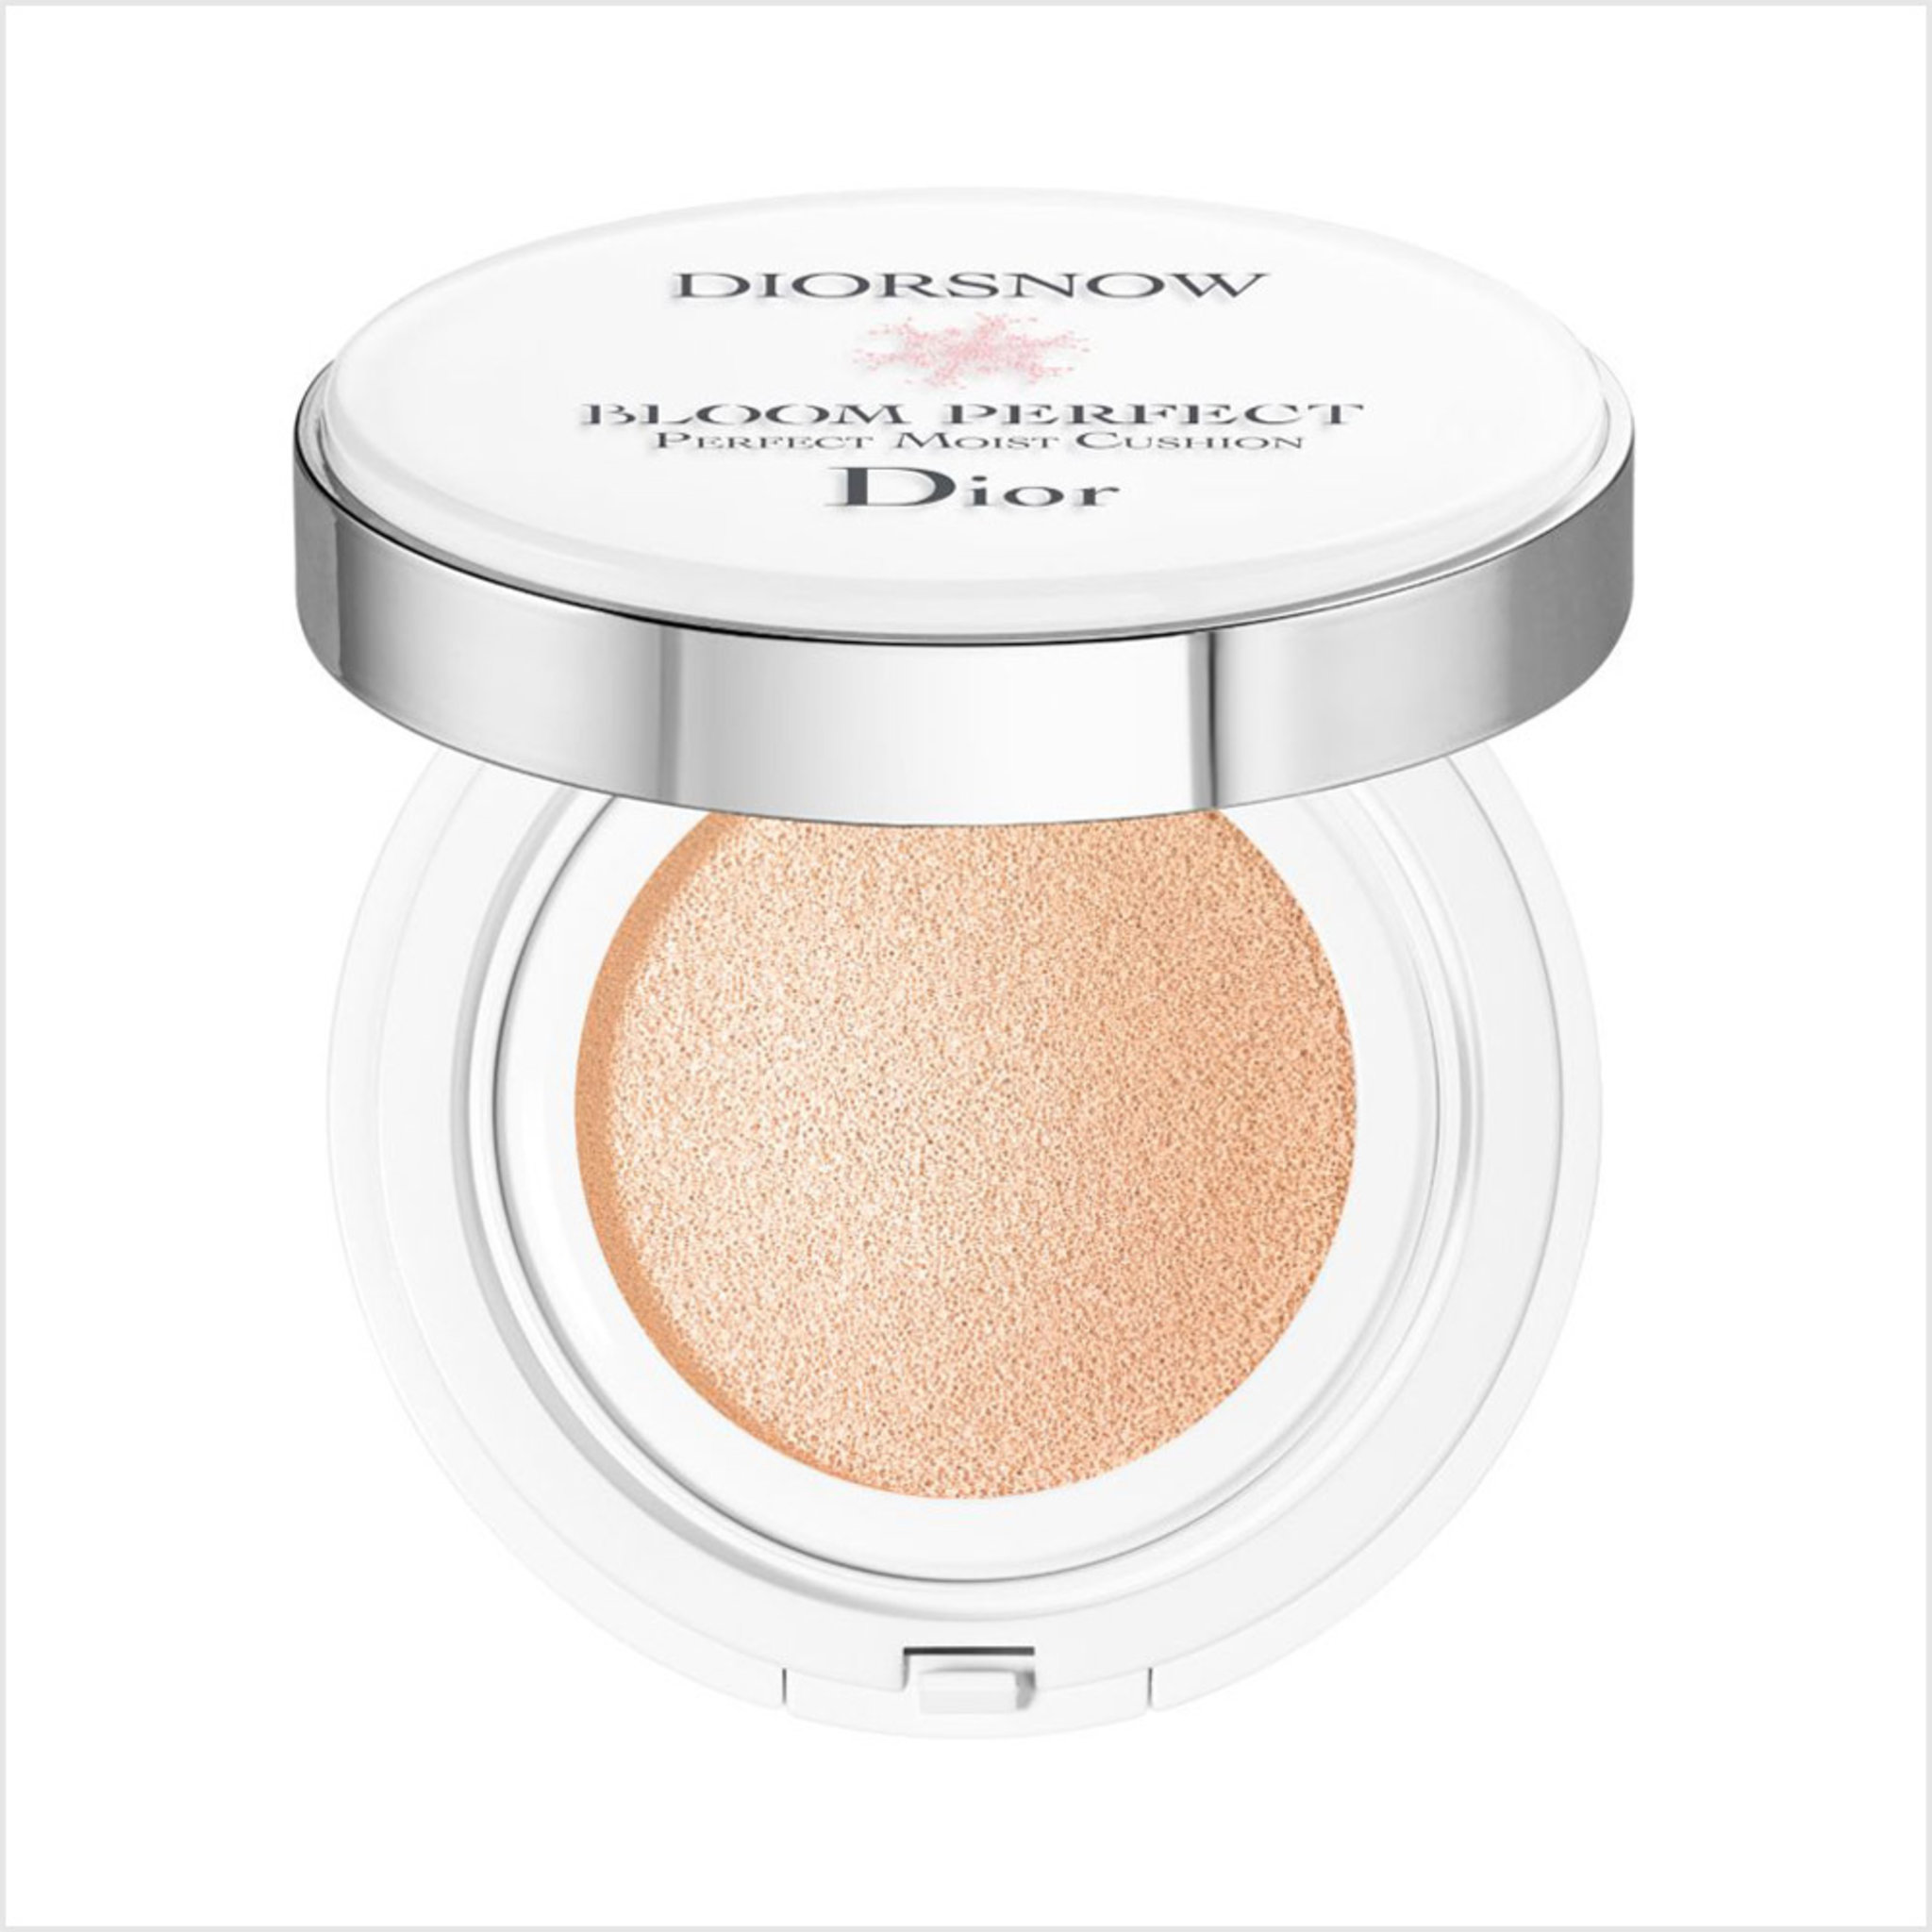 Diorsnow Bloom Perfect Brightening Perfect Moist Cushion